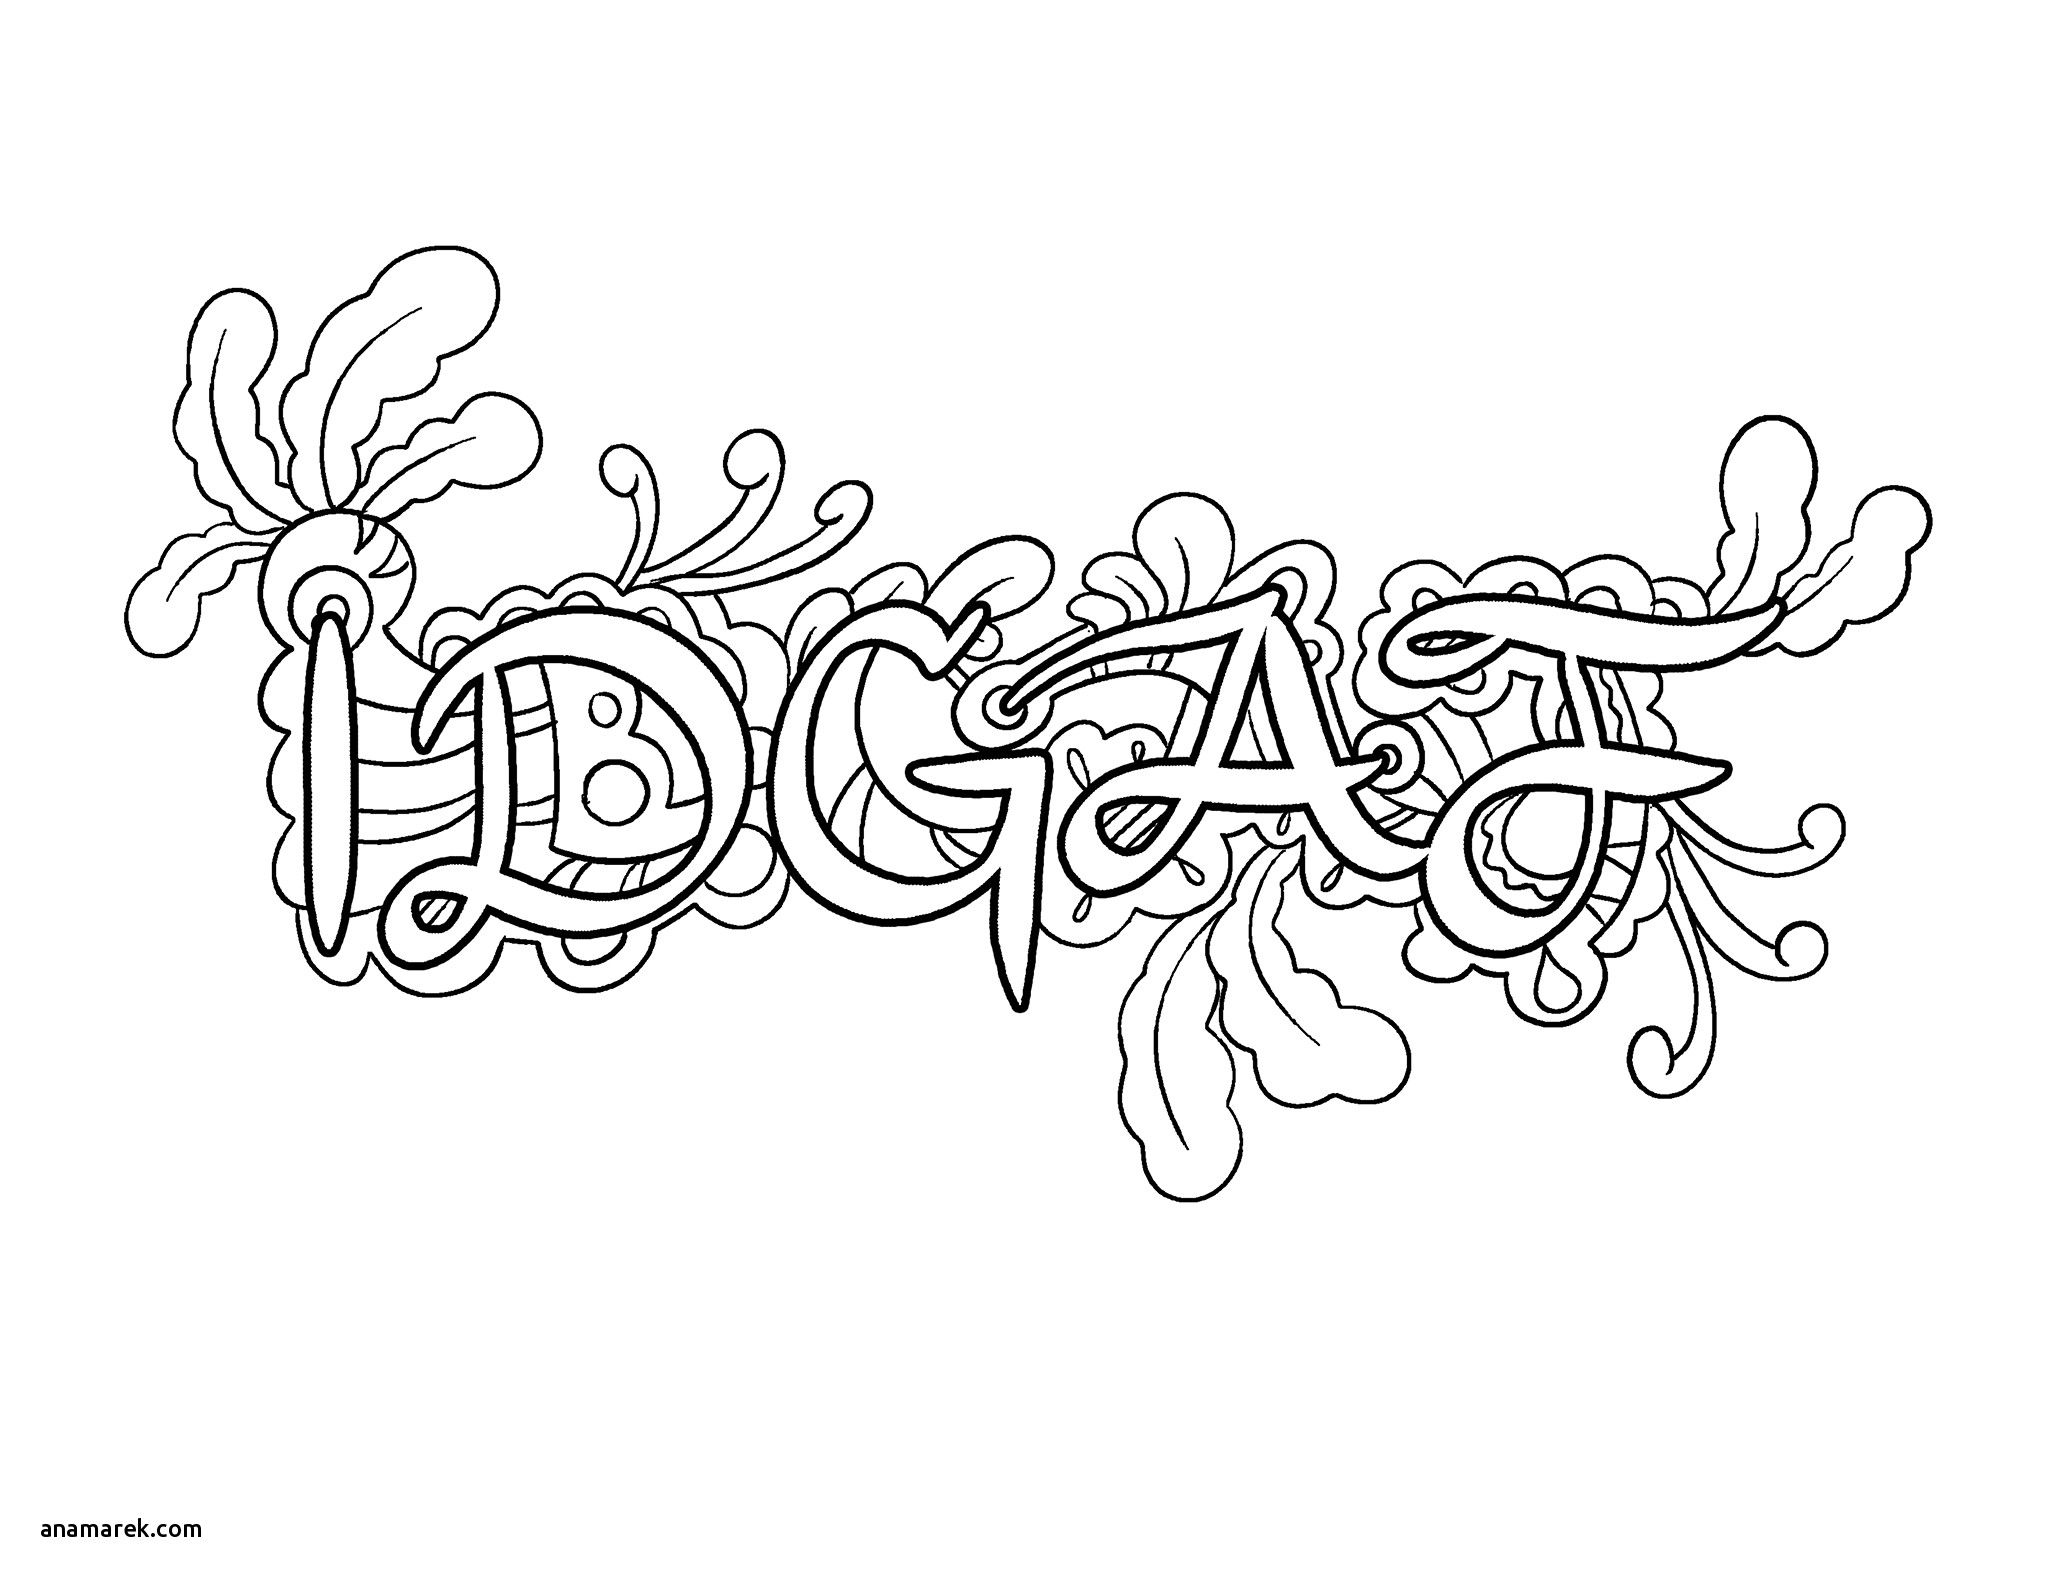 - Swear Word Coloring Book Where To Buy Coloring Page Free Adult